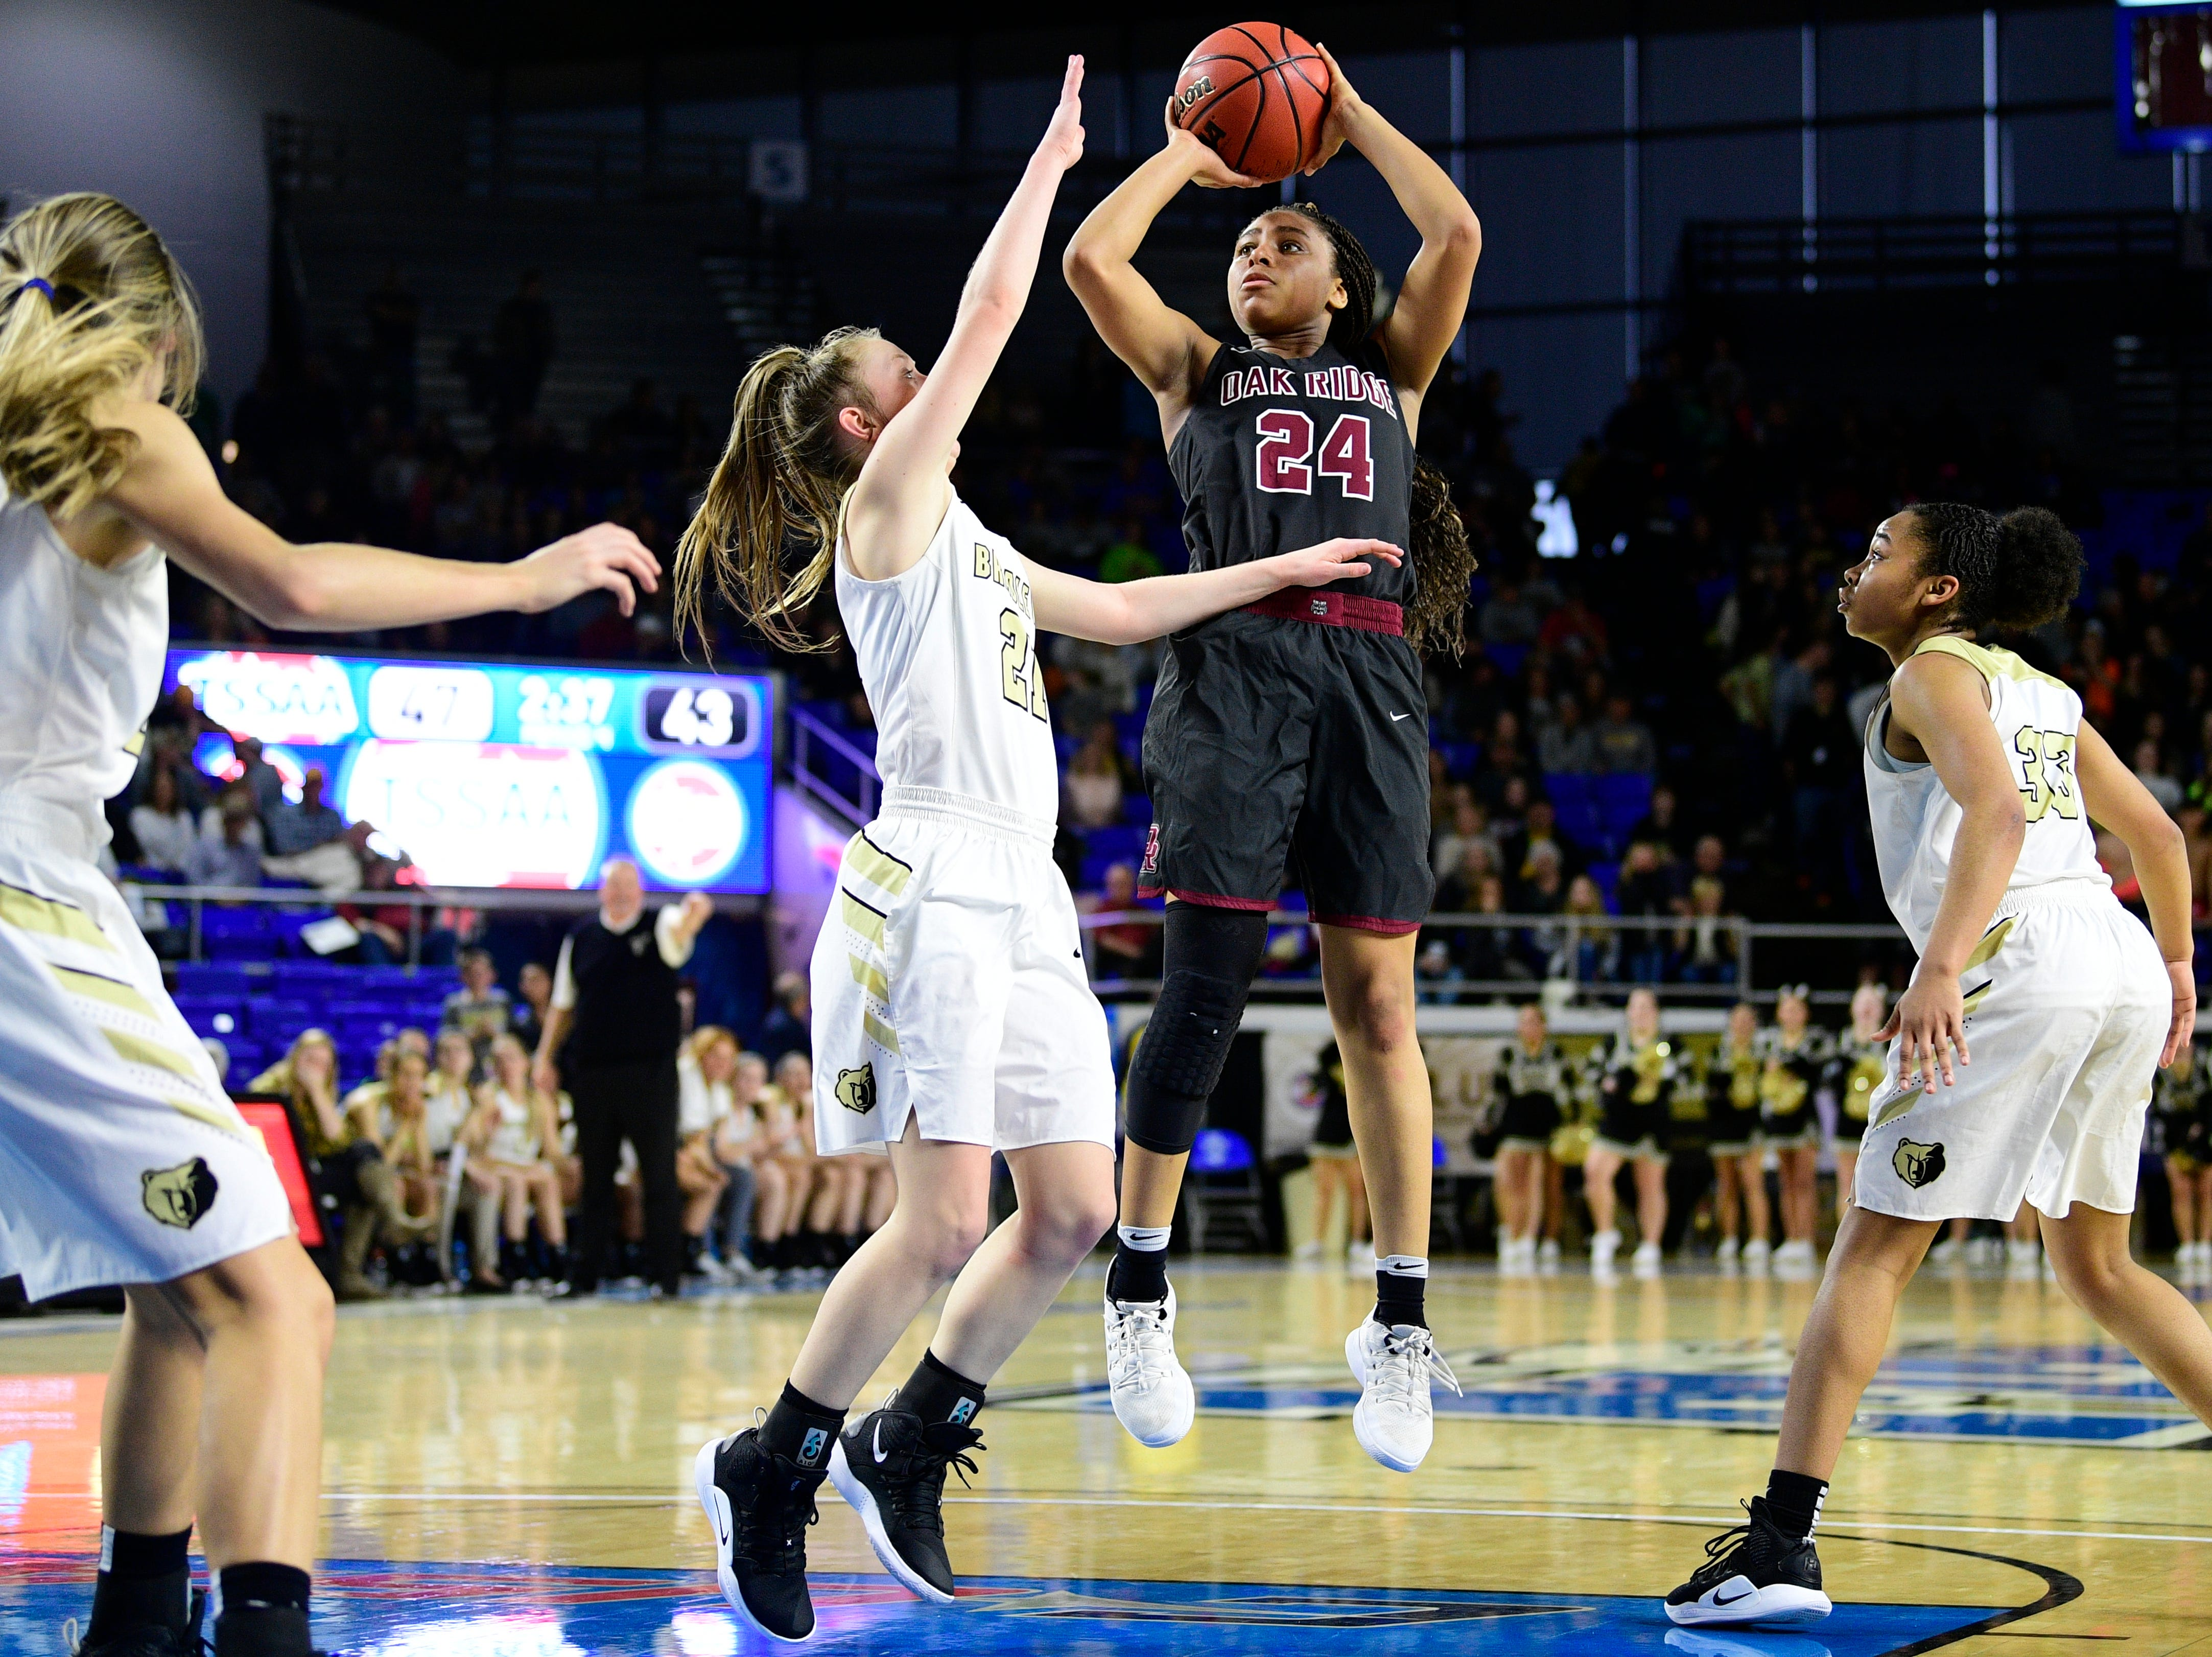 Oak Ridge's Jada Guinn (24) shoots the ball during overtime during a game between Oak Ridge and Bradley Central at the TSSAA girls state tournament at the Murphy Center in Murfreesboro, Tennessee on Friday, March 8, 2019.